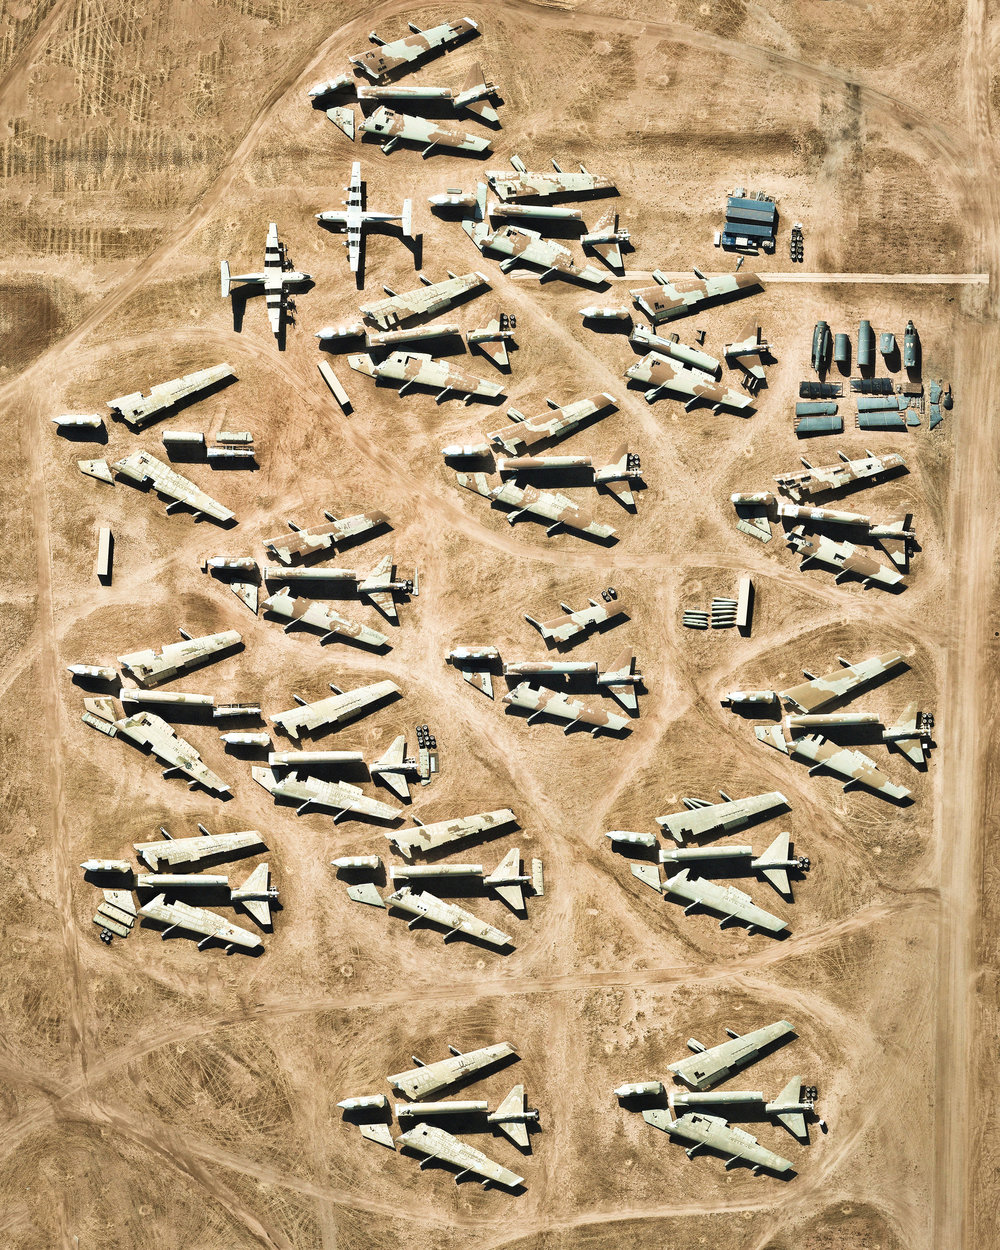 """Disassembled airplanes sit in storage at the Davis-Monthan Air Force Base in Tucson, Arizona. These planes are among more than 4,400 retired American military and government aircraft being stored and preserved on-site by the 309th Aerospace Maintenance and Regeneration Group. Covering more than four square miles (10.5 km sq.), this facility is the largest of its kind in the world.  32°08'57.1""""N, 110°49'58.1""""W  Source imagery: Nearmap"""